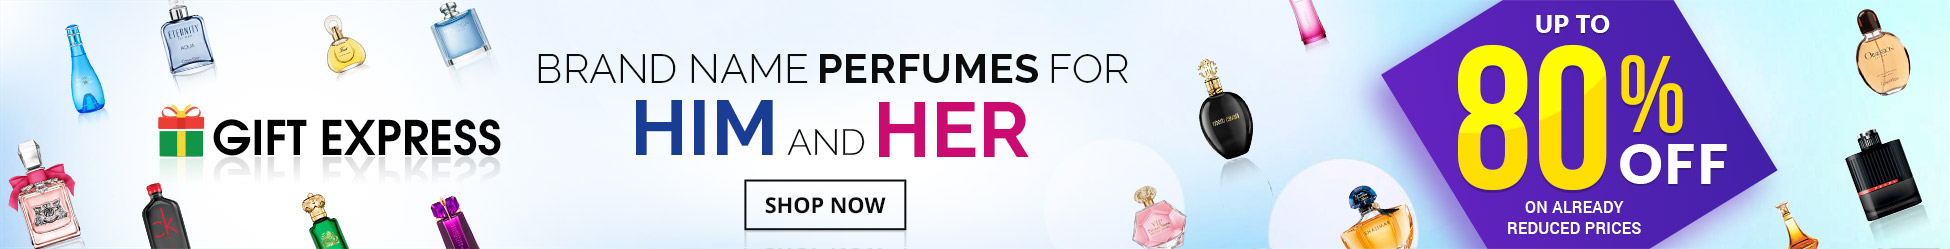 Brand Name Perfumes for Him and Her.